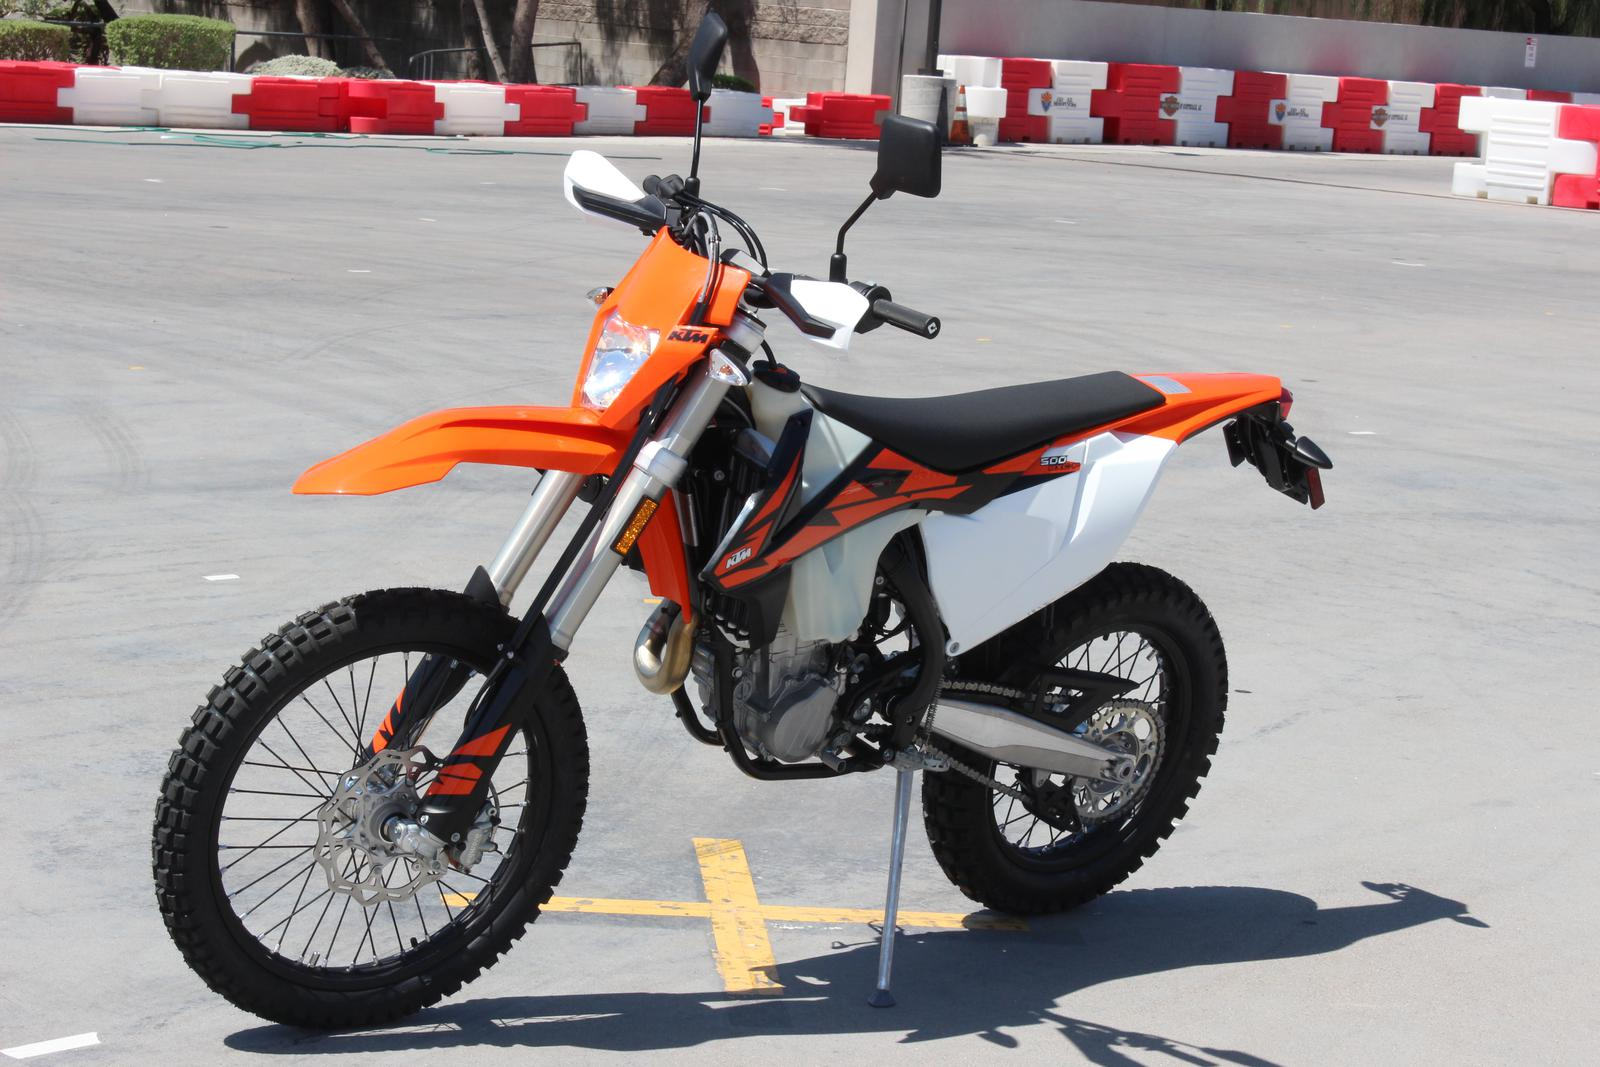 2018 ktm exc f 500. wonderful exc 2018 ktm 500 excf 5 for ktm exc f m